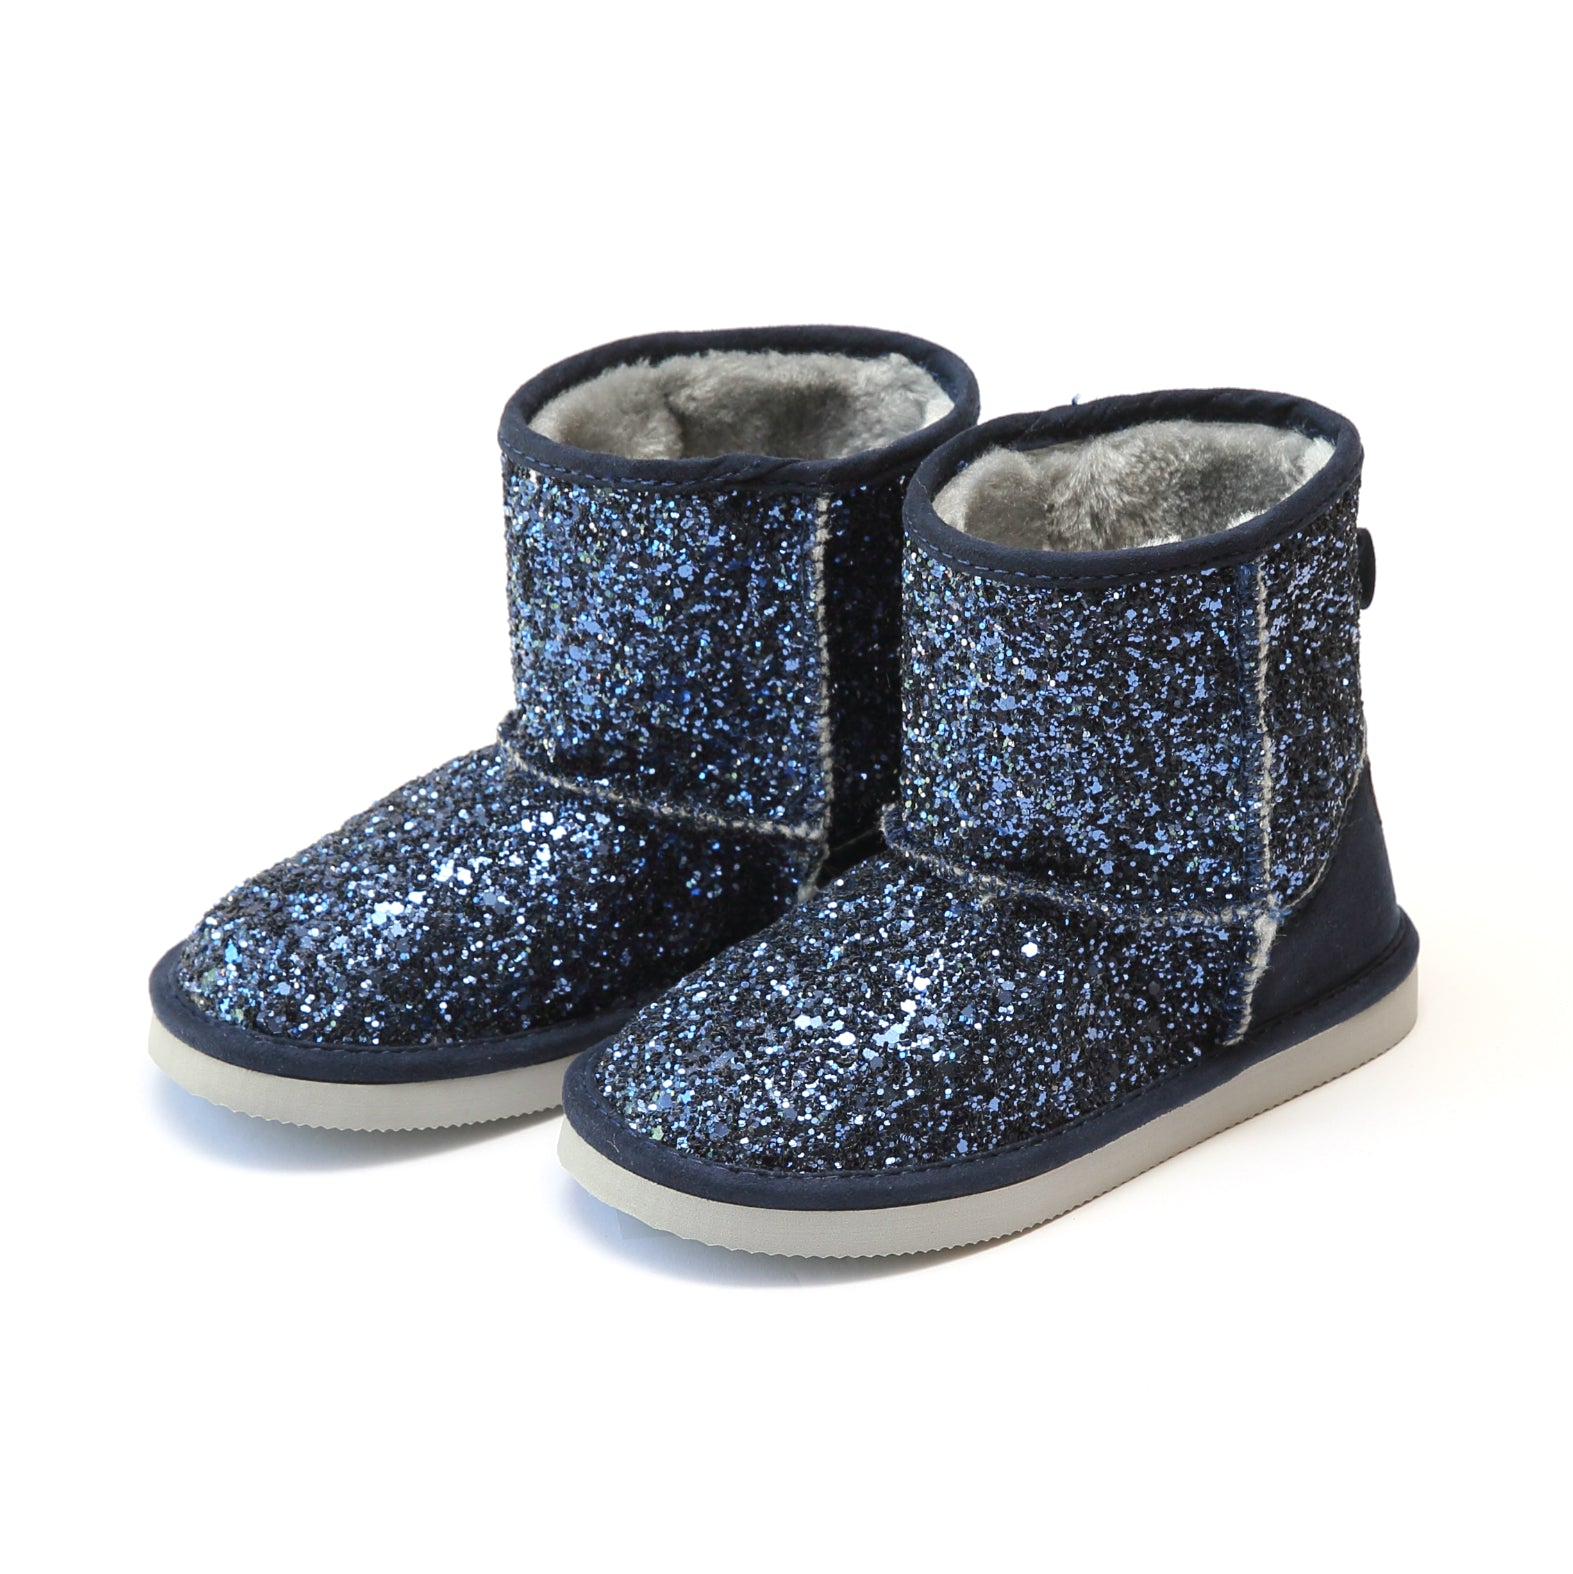 Navy Sparkly Glitter Boot – L'Amour Shoes